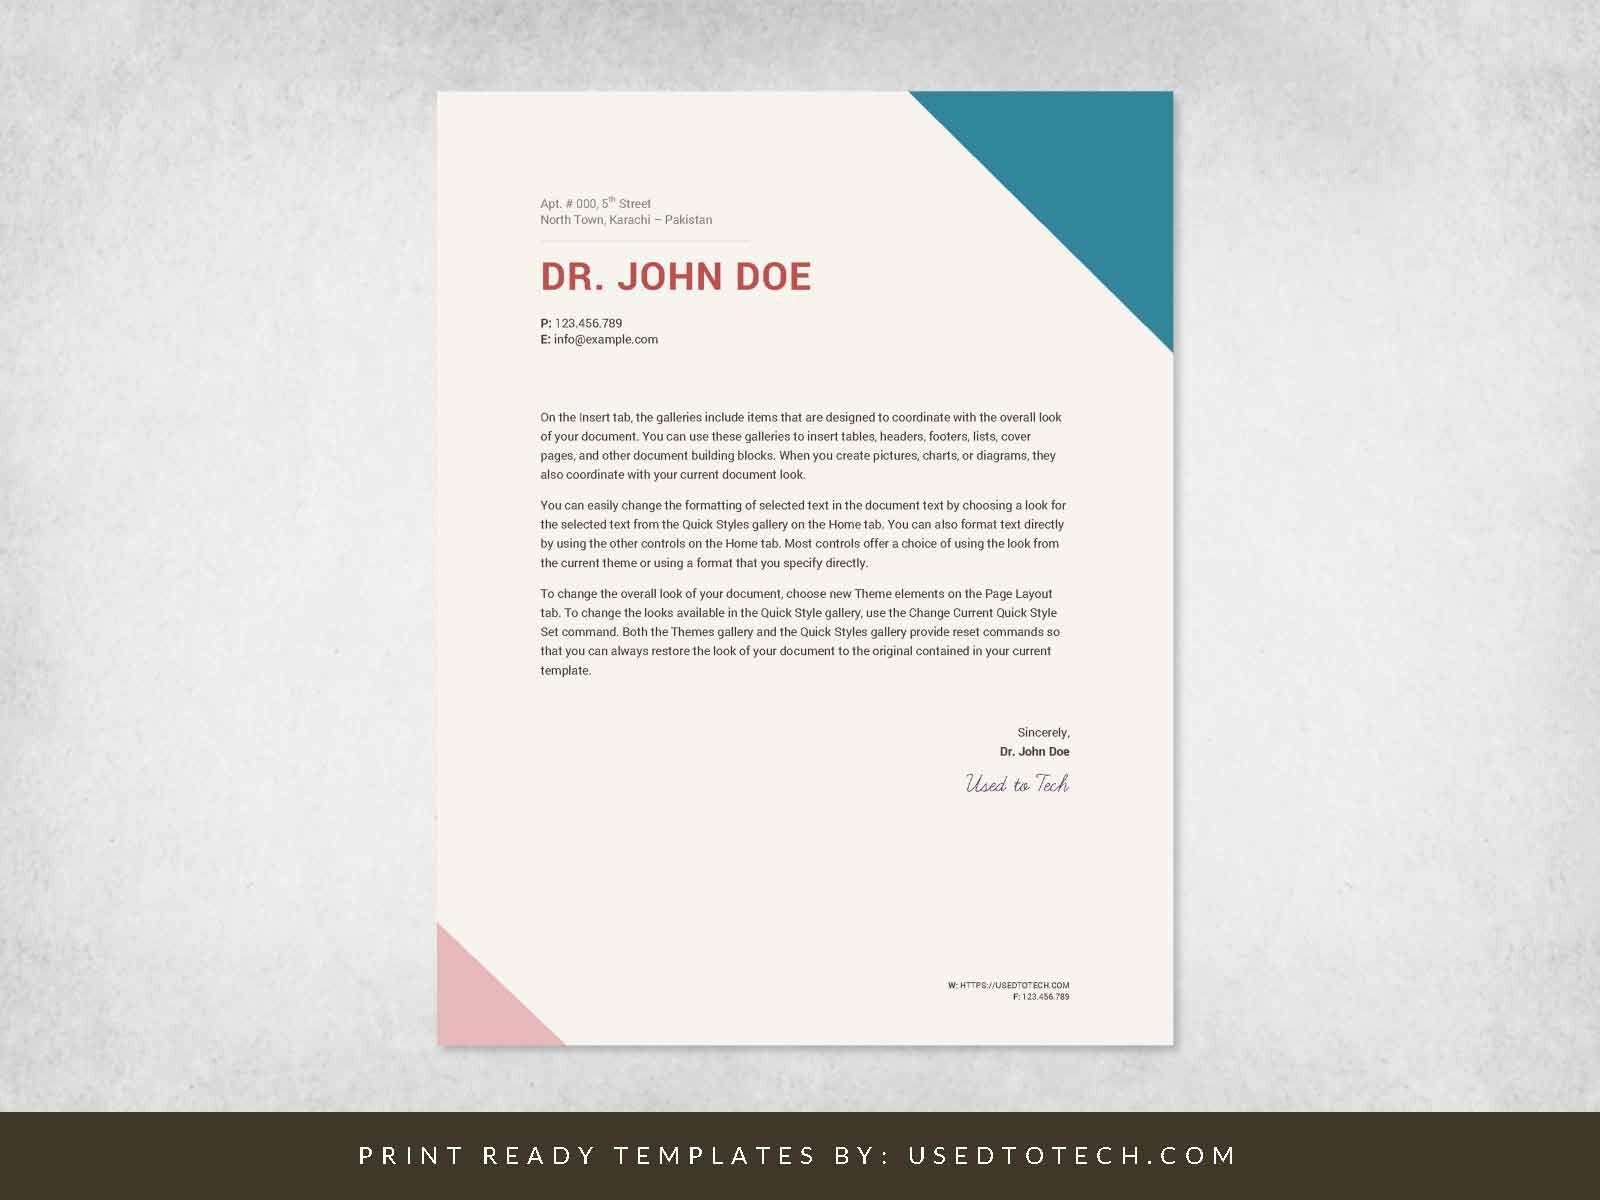 004 Stunning Letterhead Format In Word Free Download Pdf Example Full